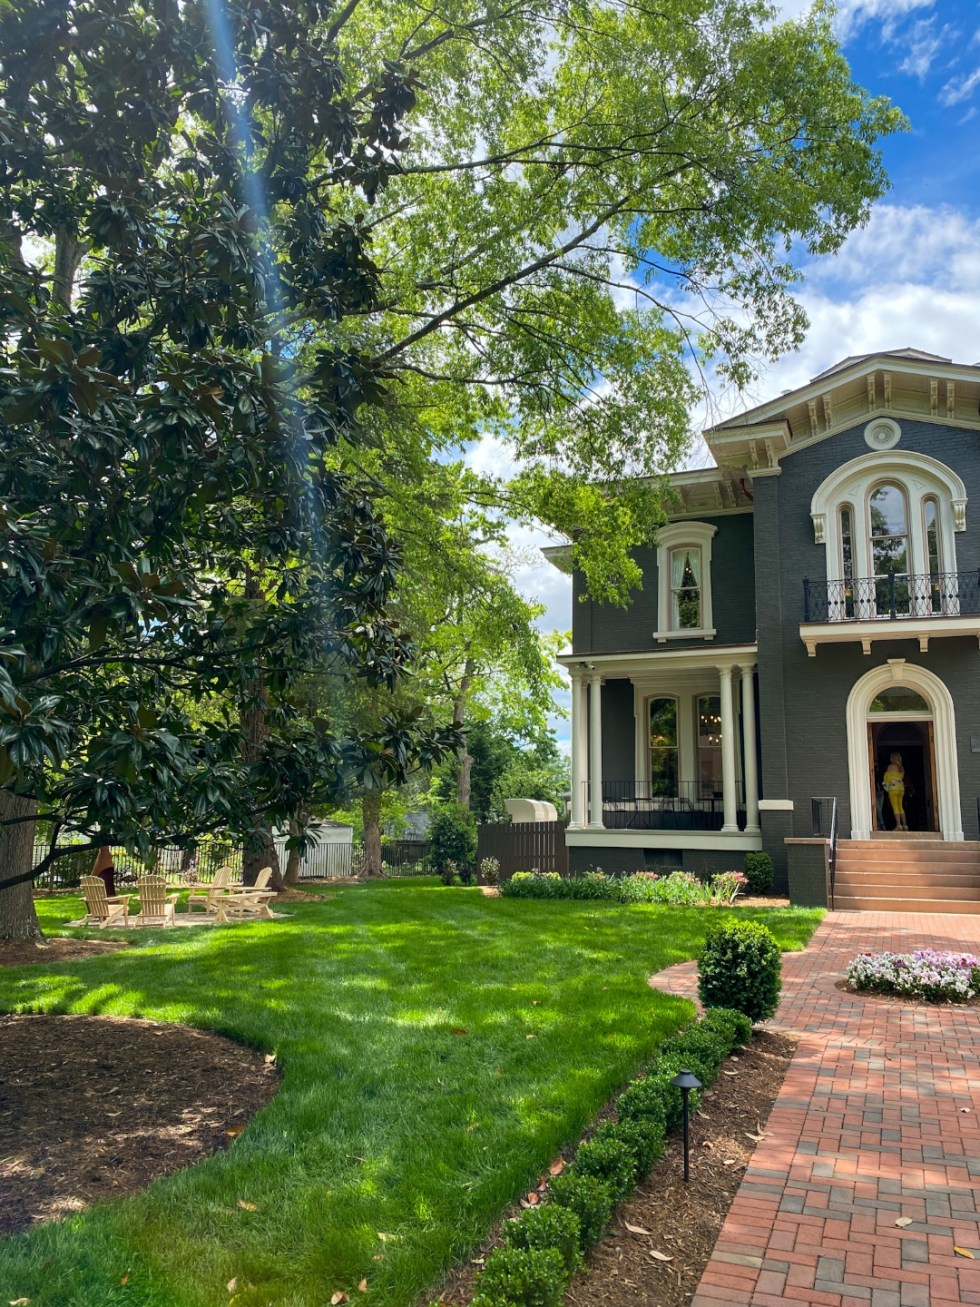 Boutique Hotels in Raleigh, NC: Heights House Hotel Preview - I'm Fixin' To - @imfixintoblog